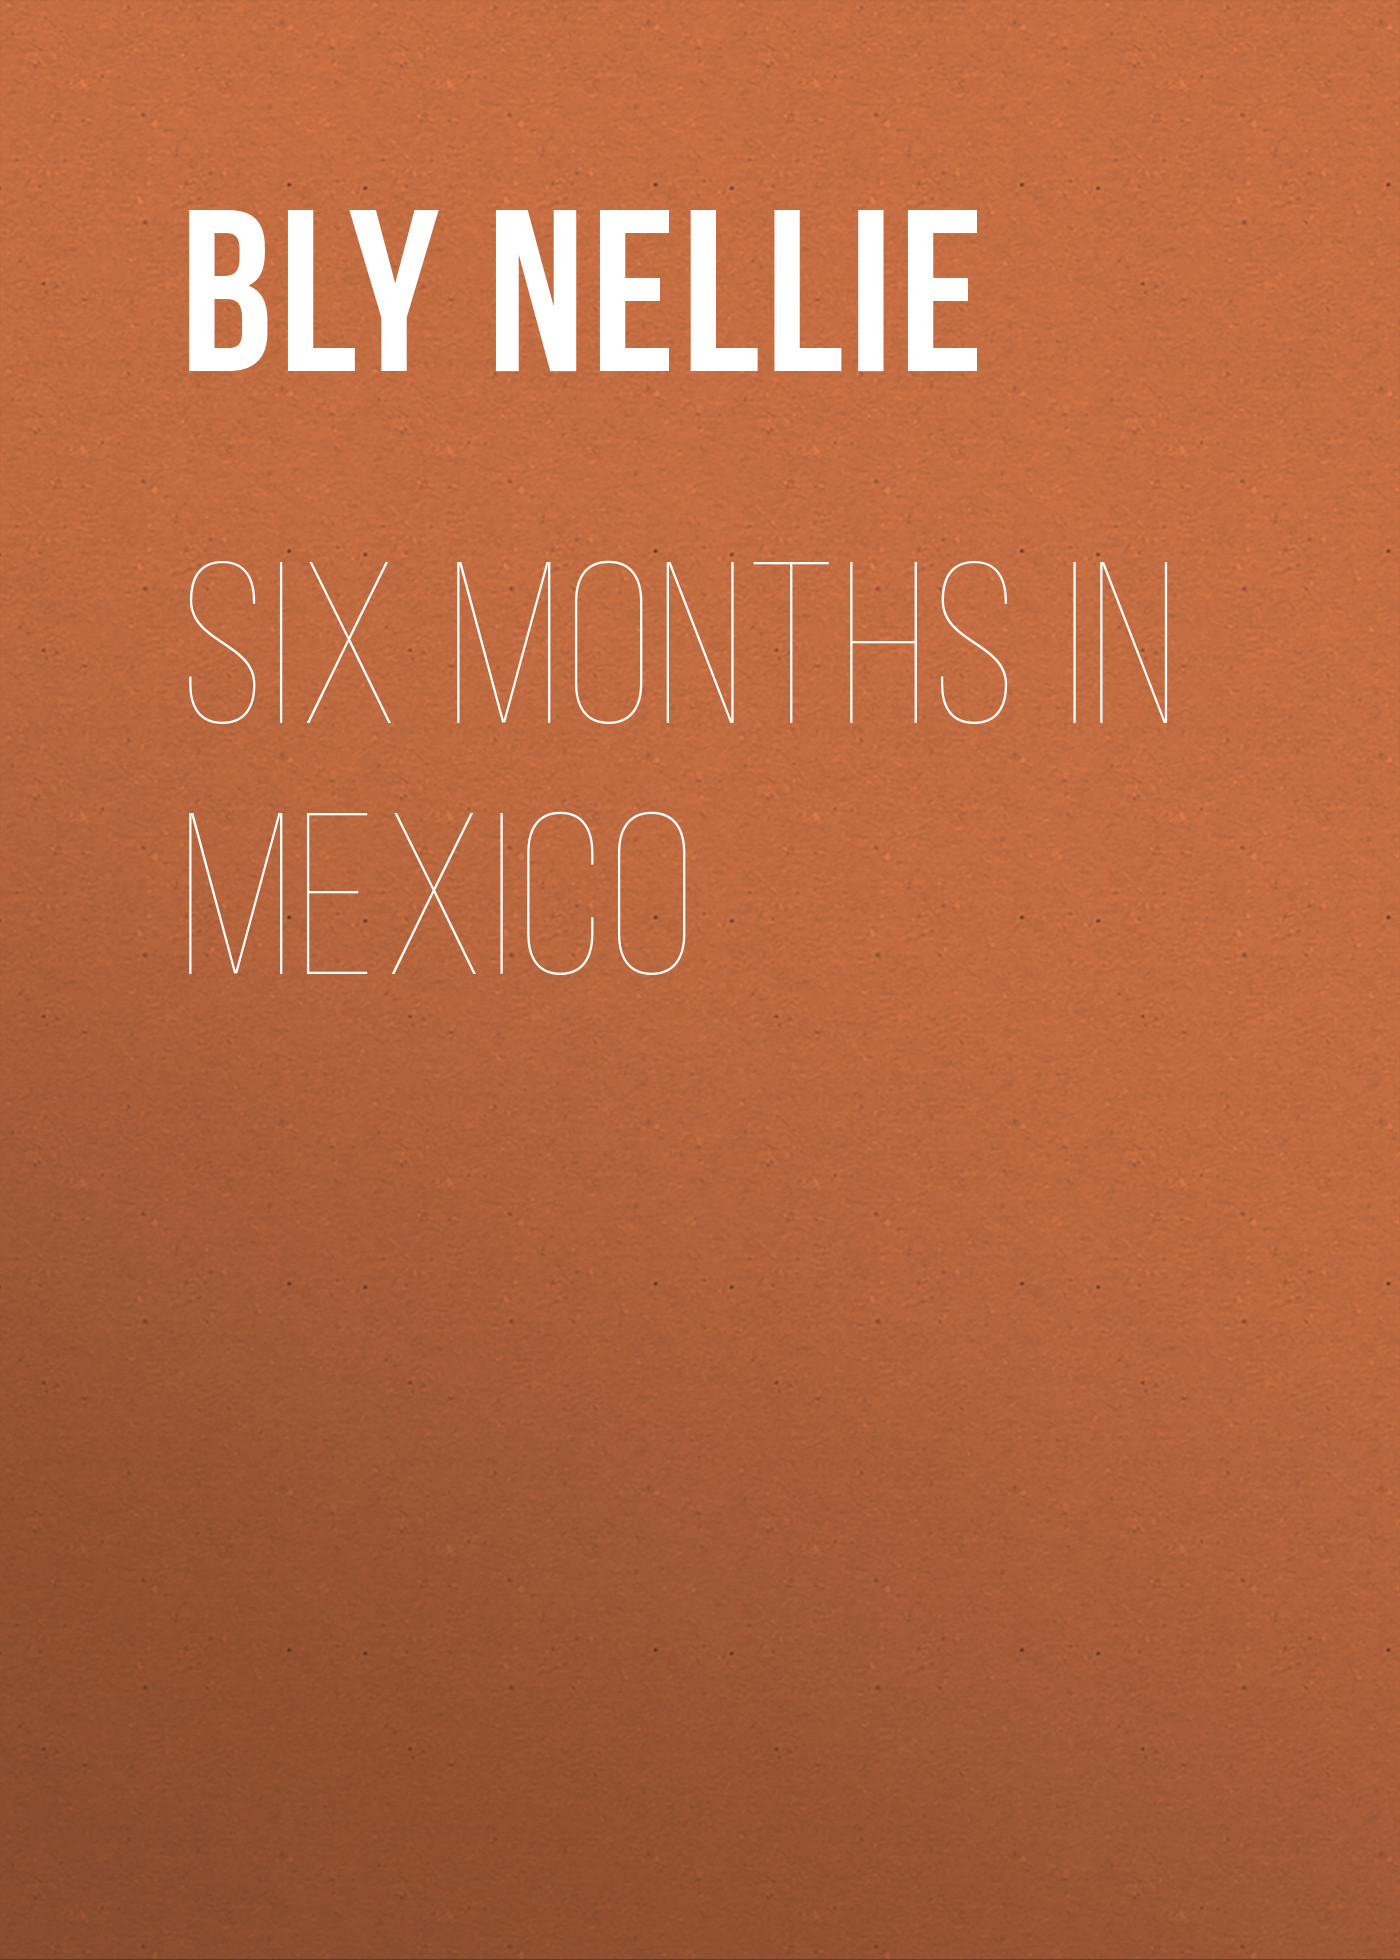 Bly Nellie Six Months in Mexico синийцвет 3 6 months